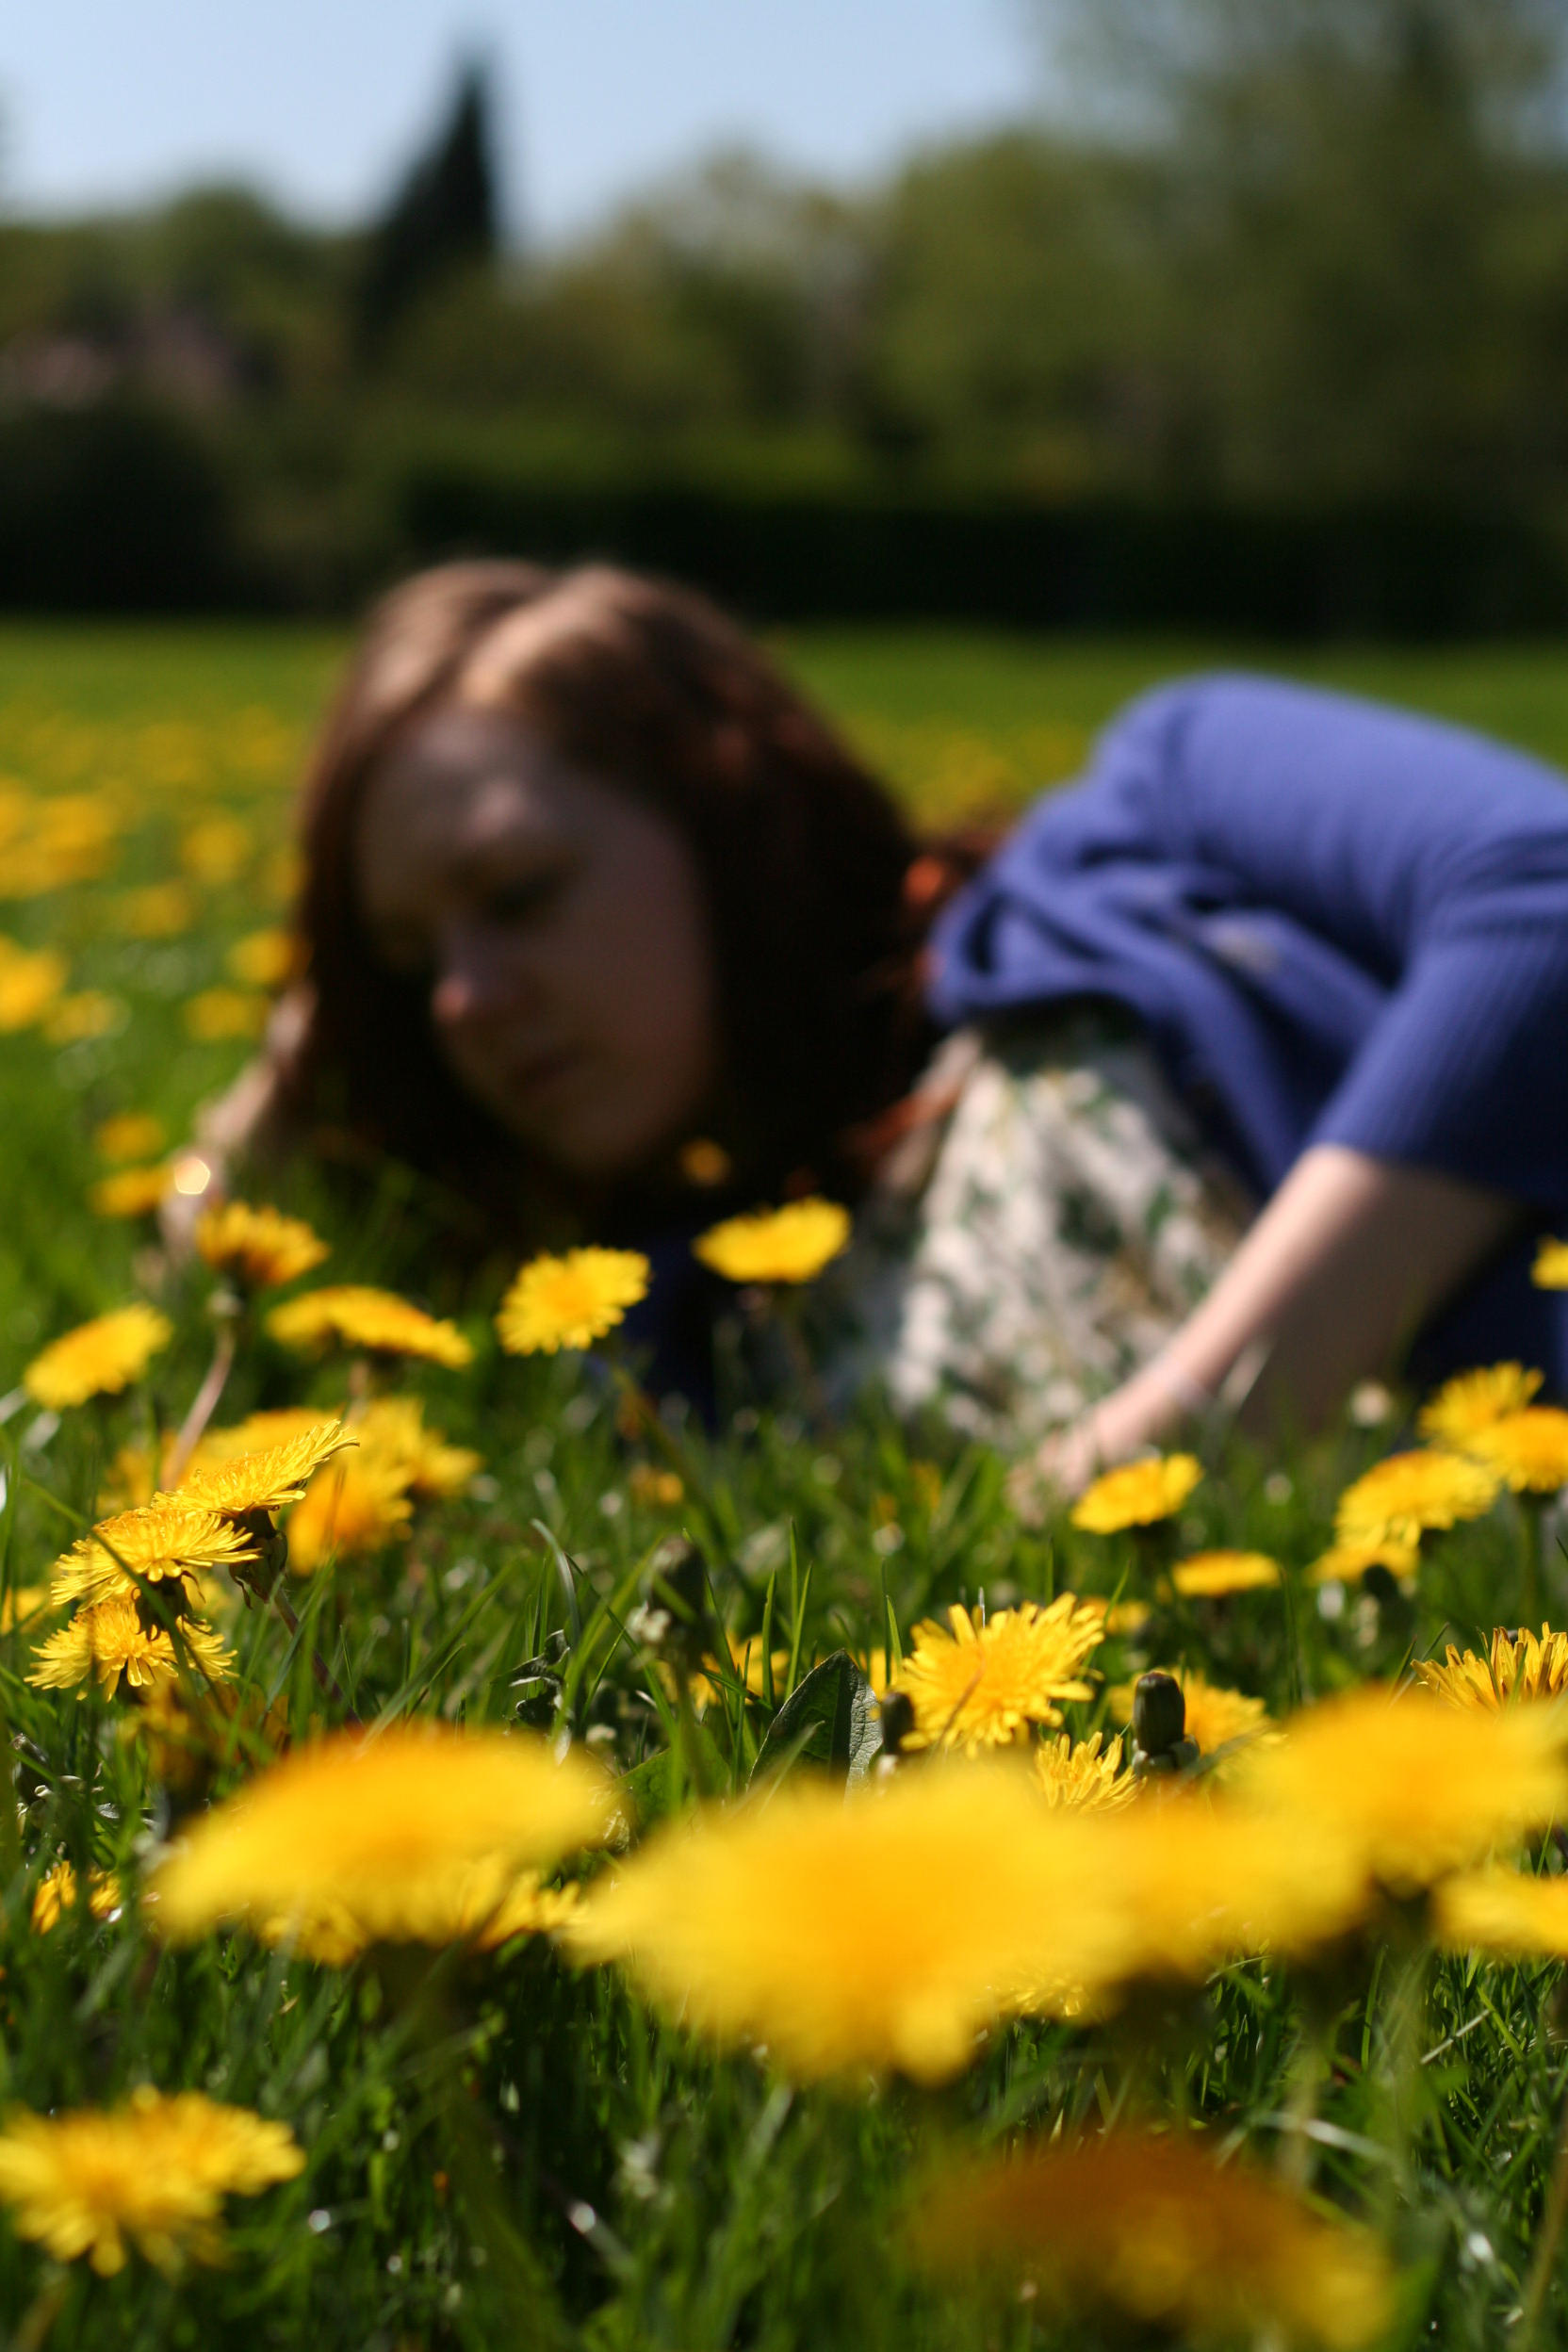 Larafairie-stock: Dandelions by larafairie-stock